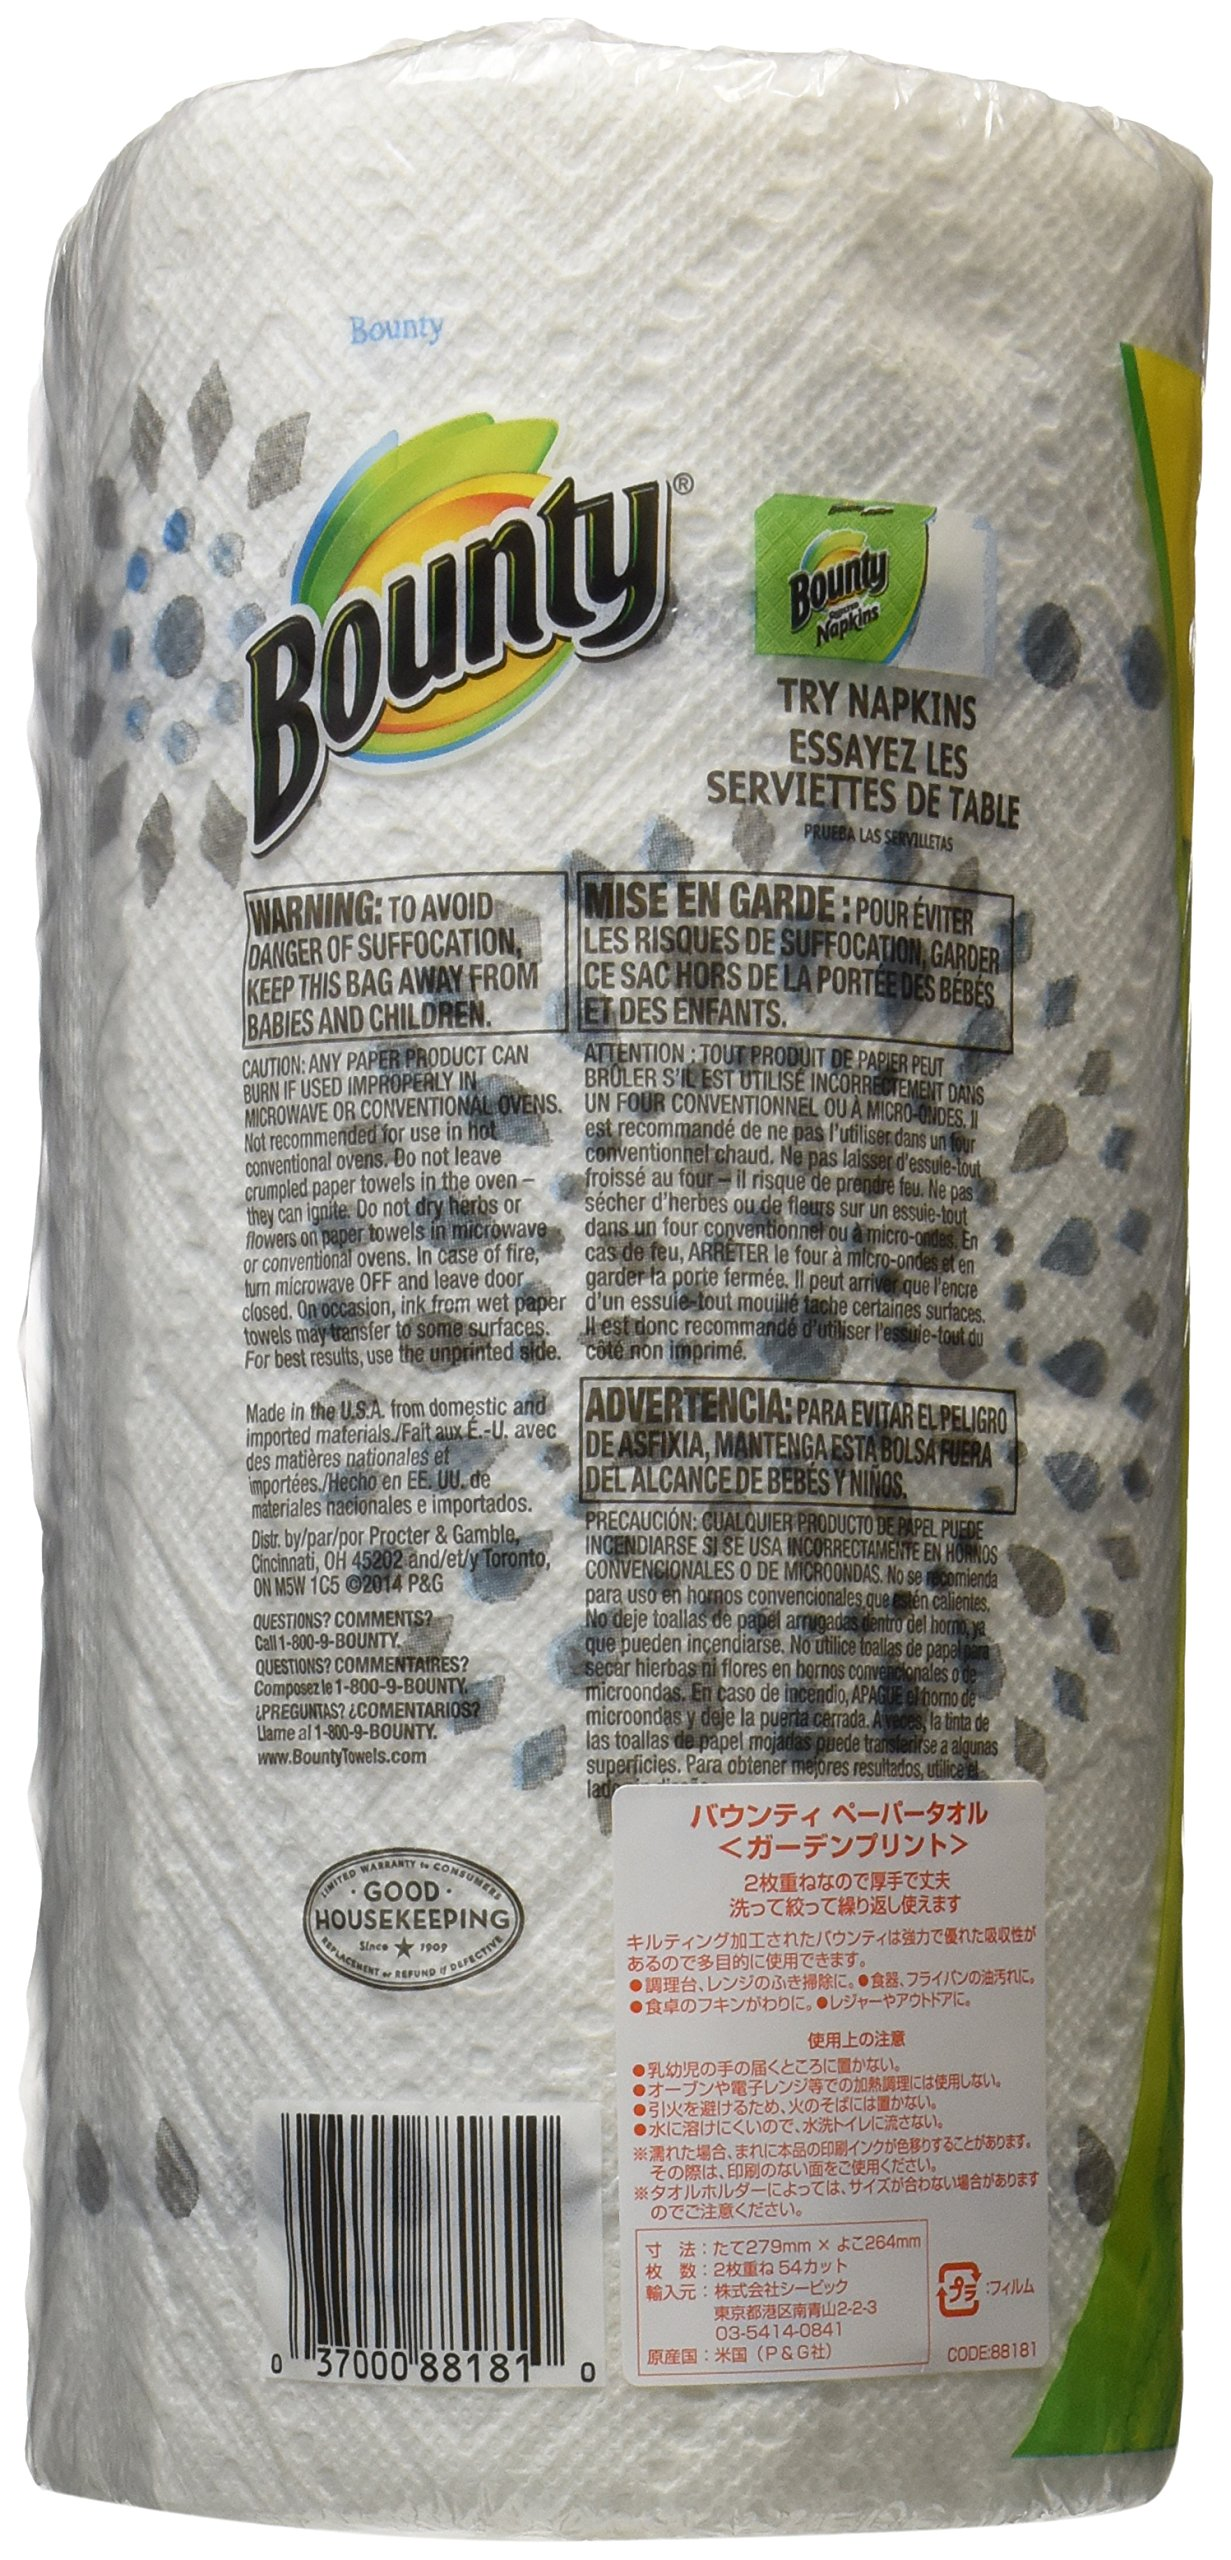 Bounty Paper Towels, Prints, 1 Big Rolls, 54 2-Ply Sheets (Pack of 24) by Bounty (Image #1)